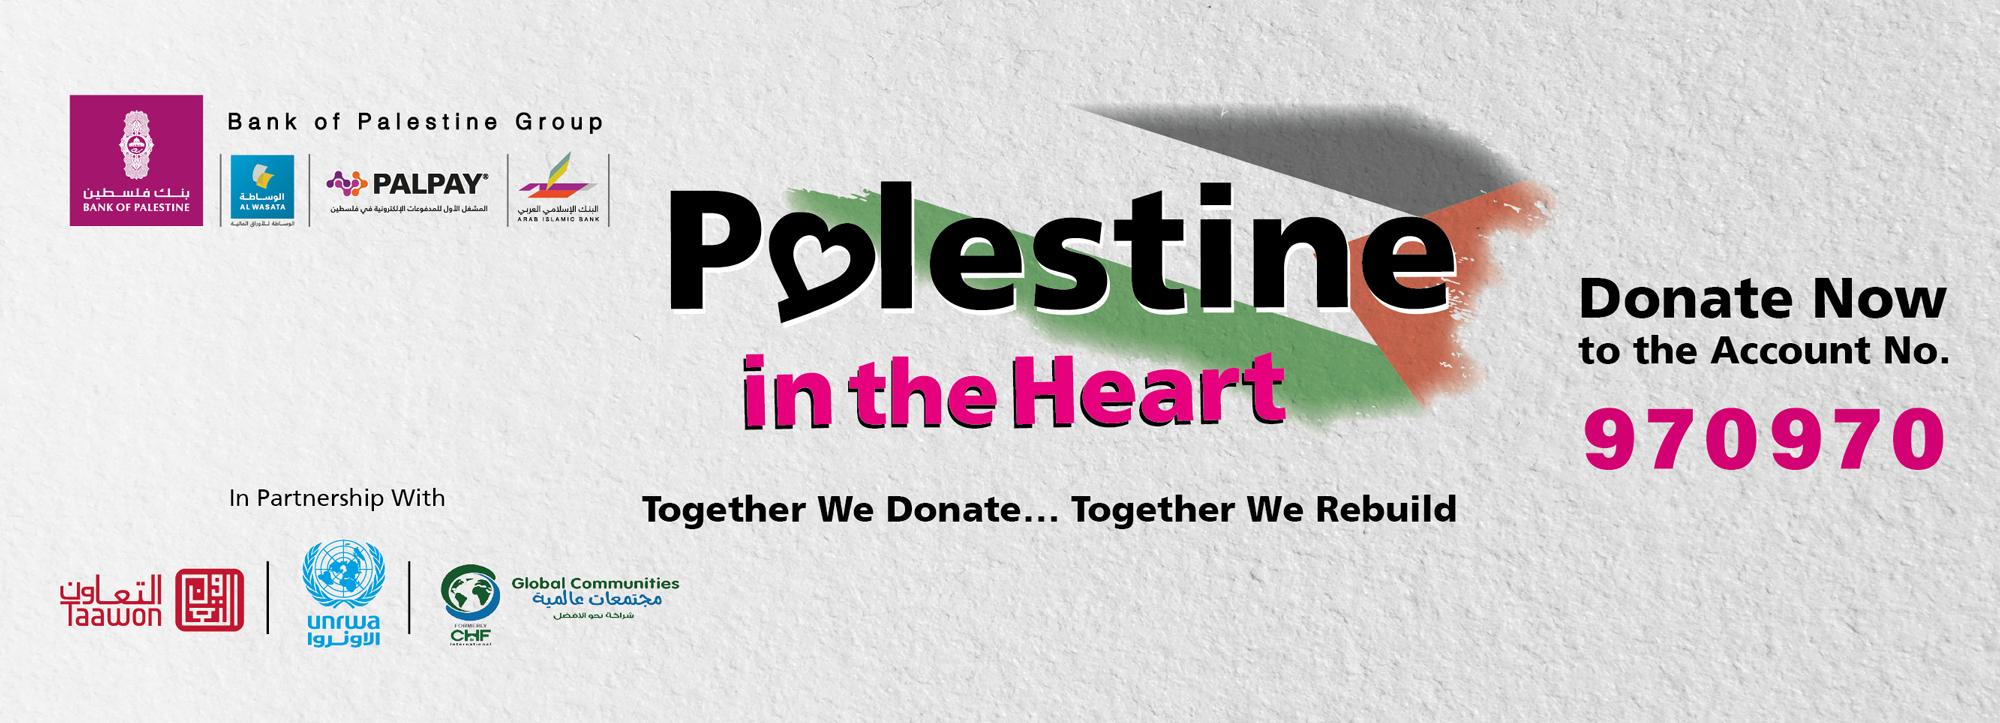 """Bank of Palestine Group launches """"Palestine in the Heart"""" campaign in support of Humanitarian Relief efforts in Gaza & West Bank while providing immediate in kind support on ground to UNRWA shelters"""